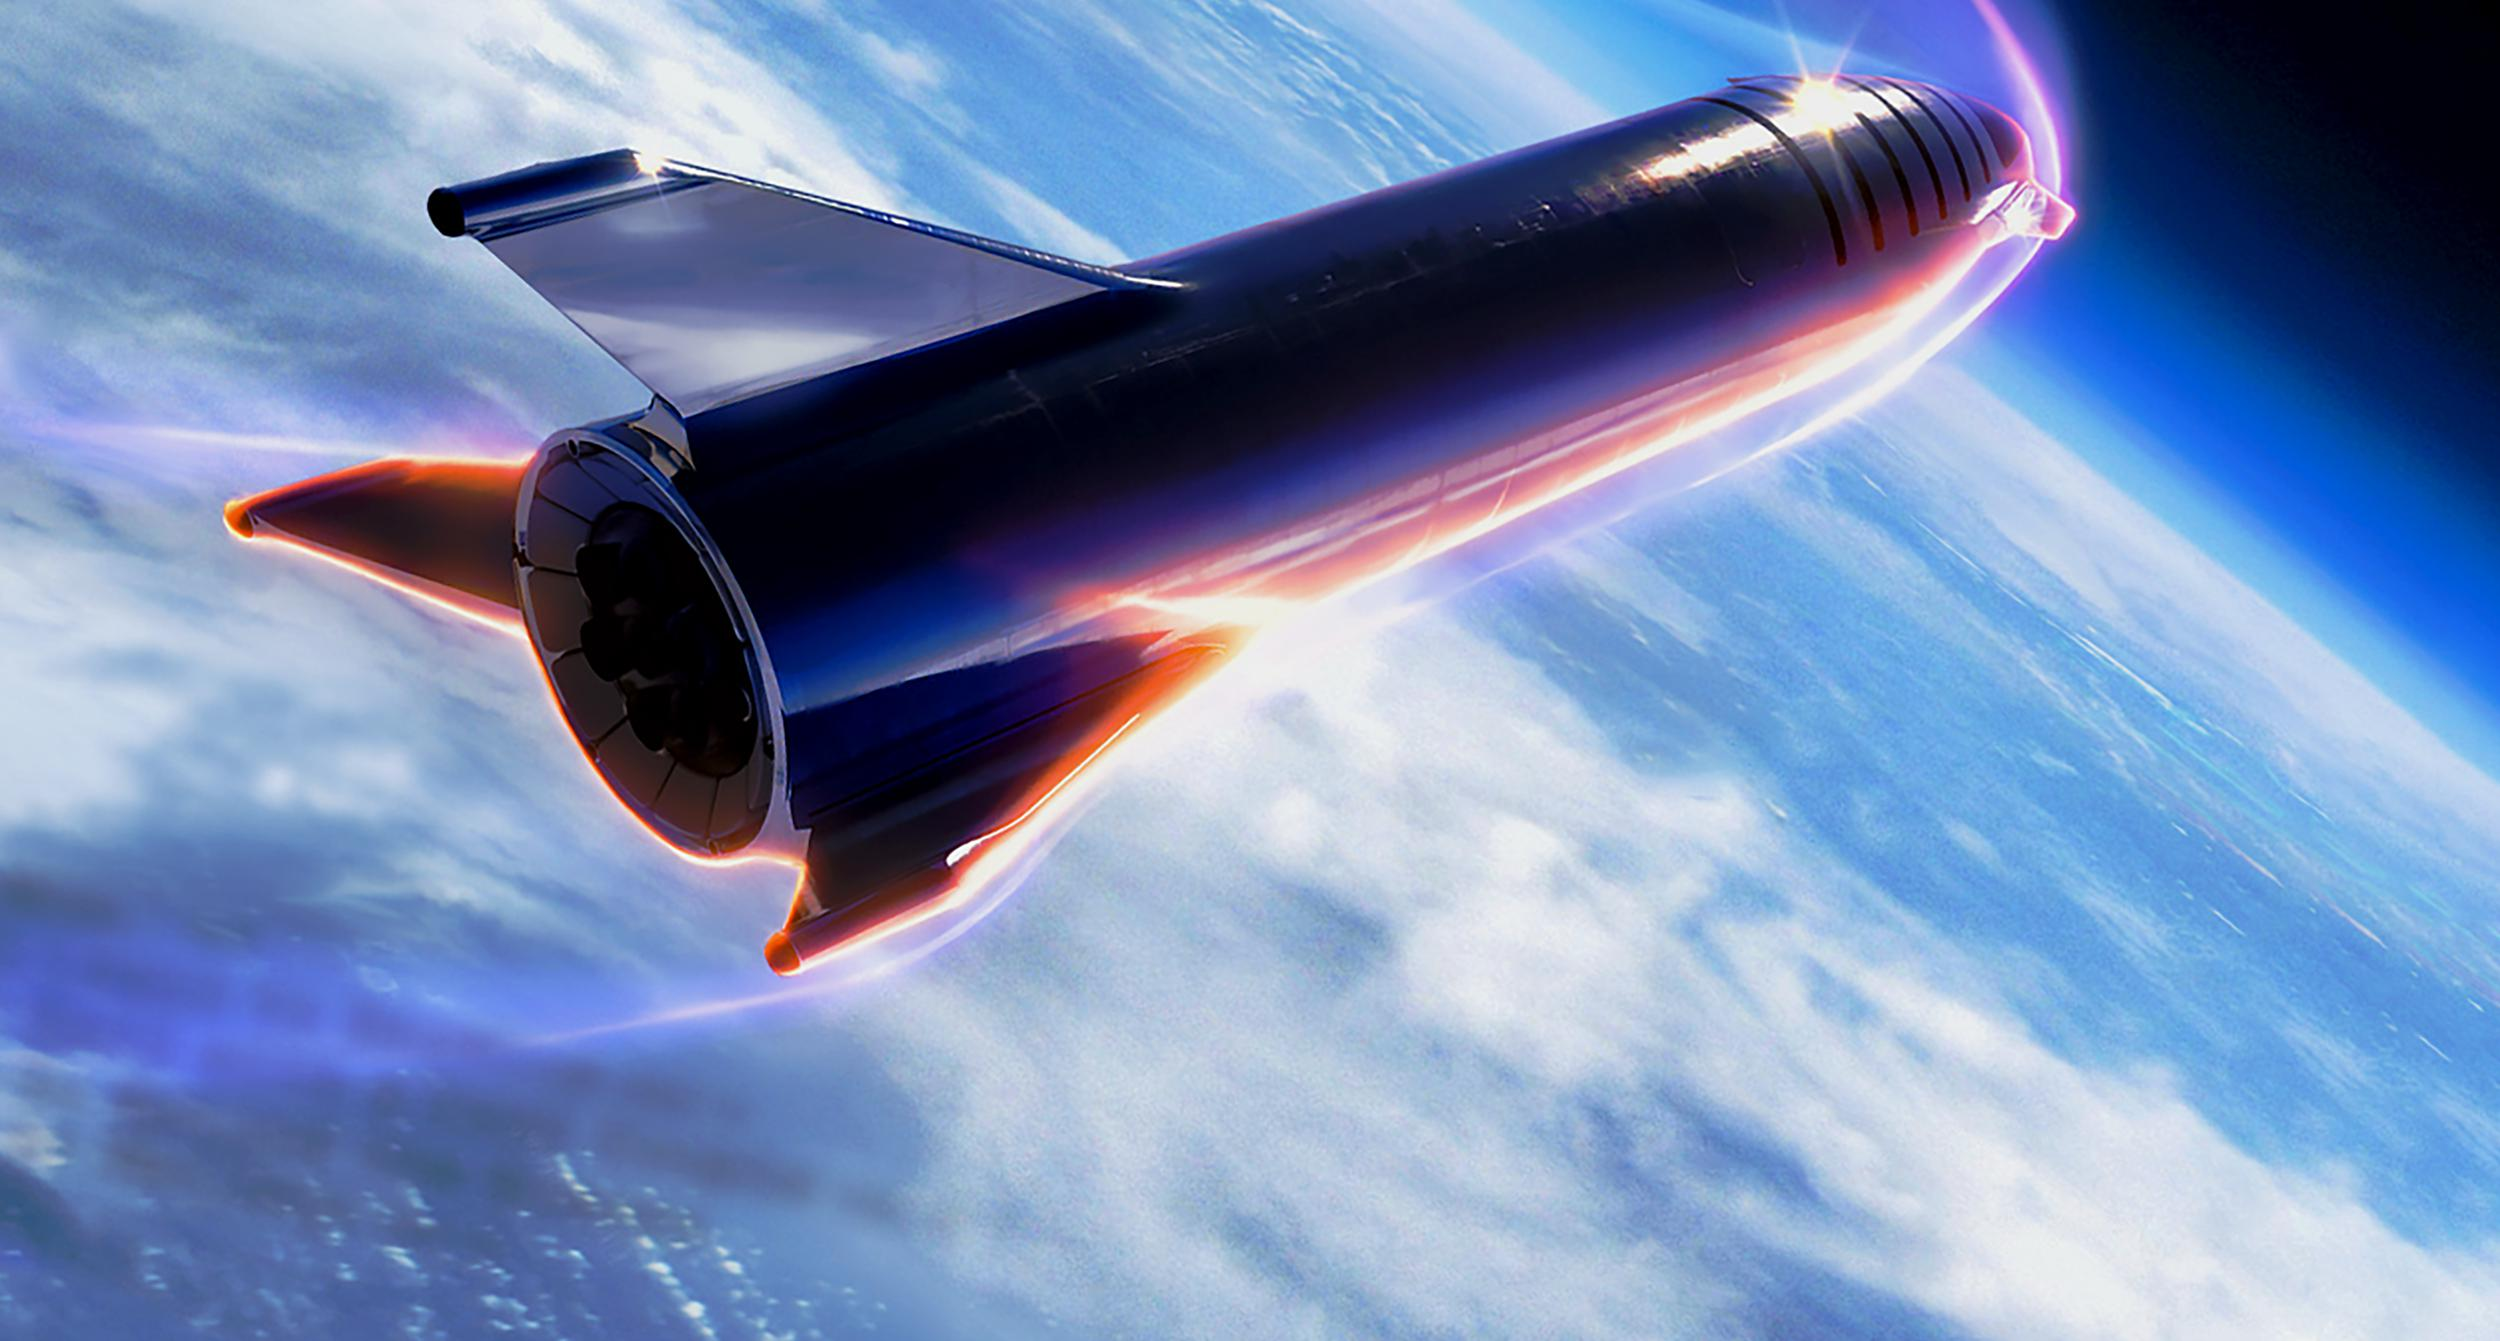 The future of steel in space